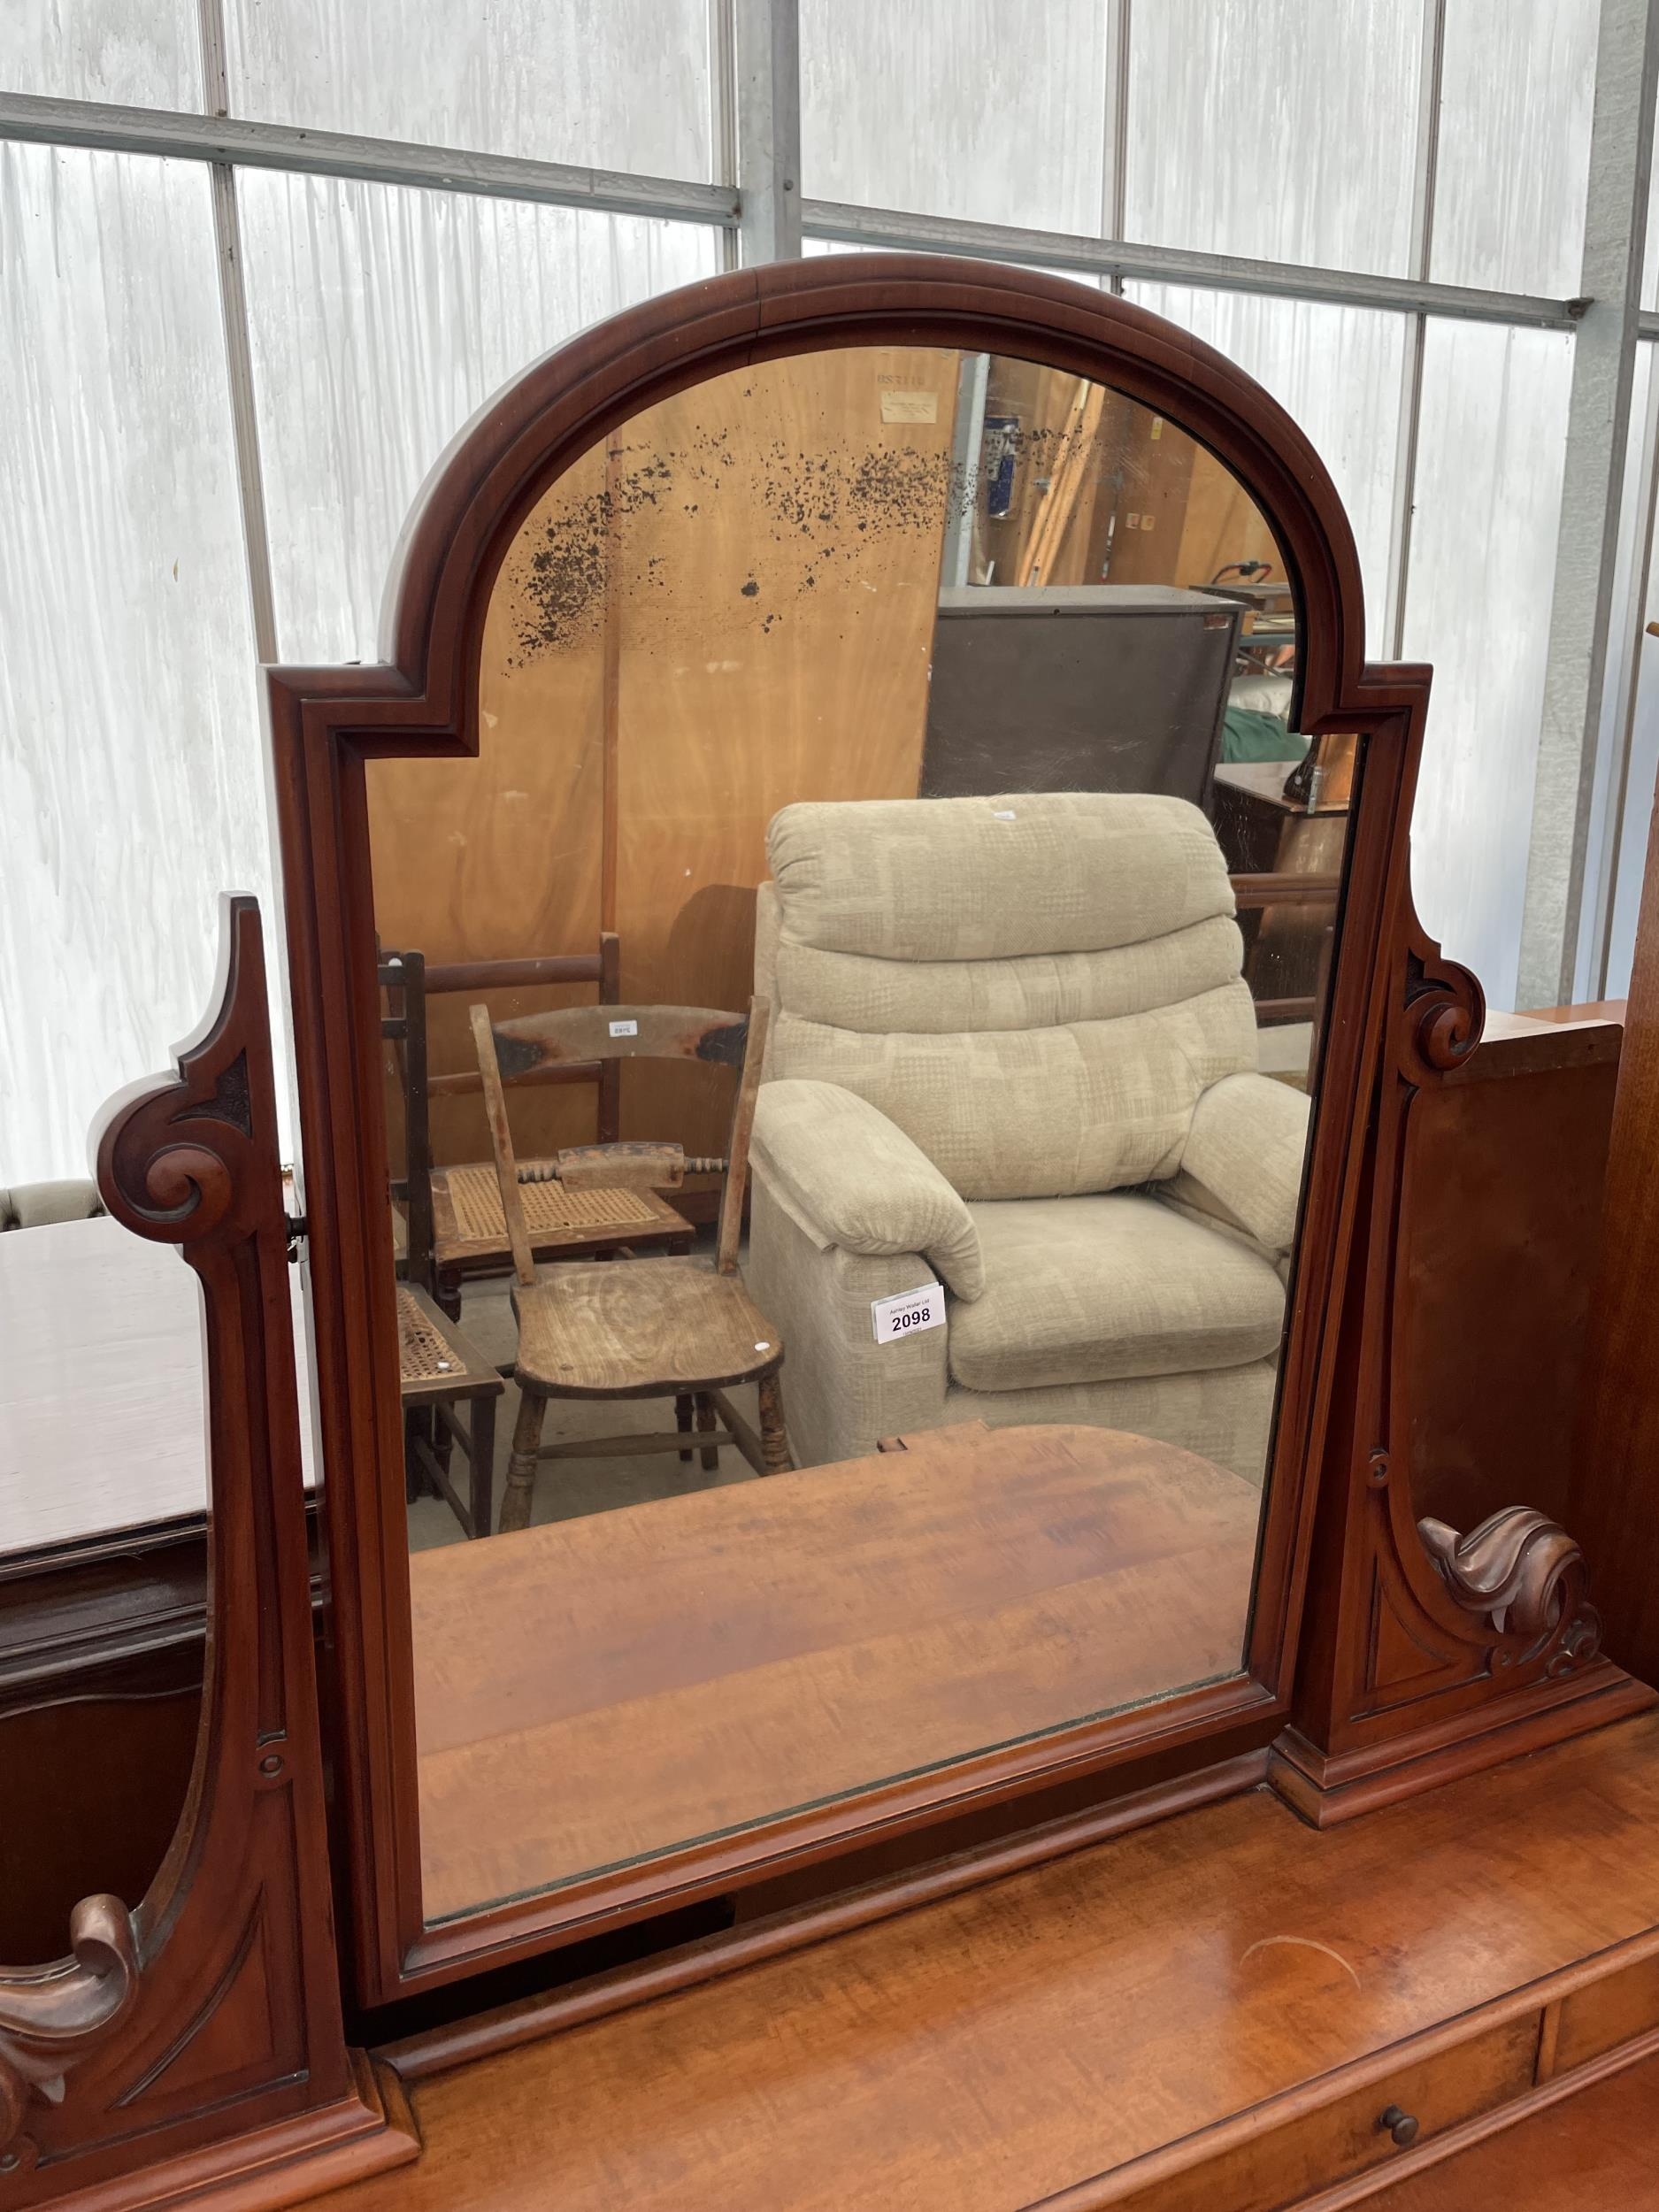 A VICTORIAN MAHOGANY DUCHESS DRESSING TABLE ON TURNED TAPERING LEGS WITH WHITE WIDE P+S PATENT - Image 2 of 4